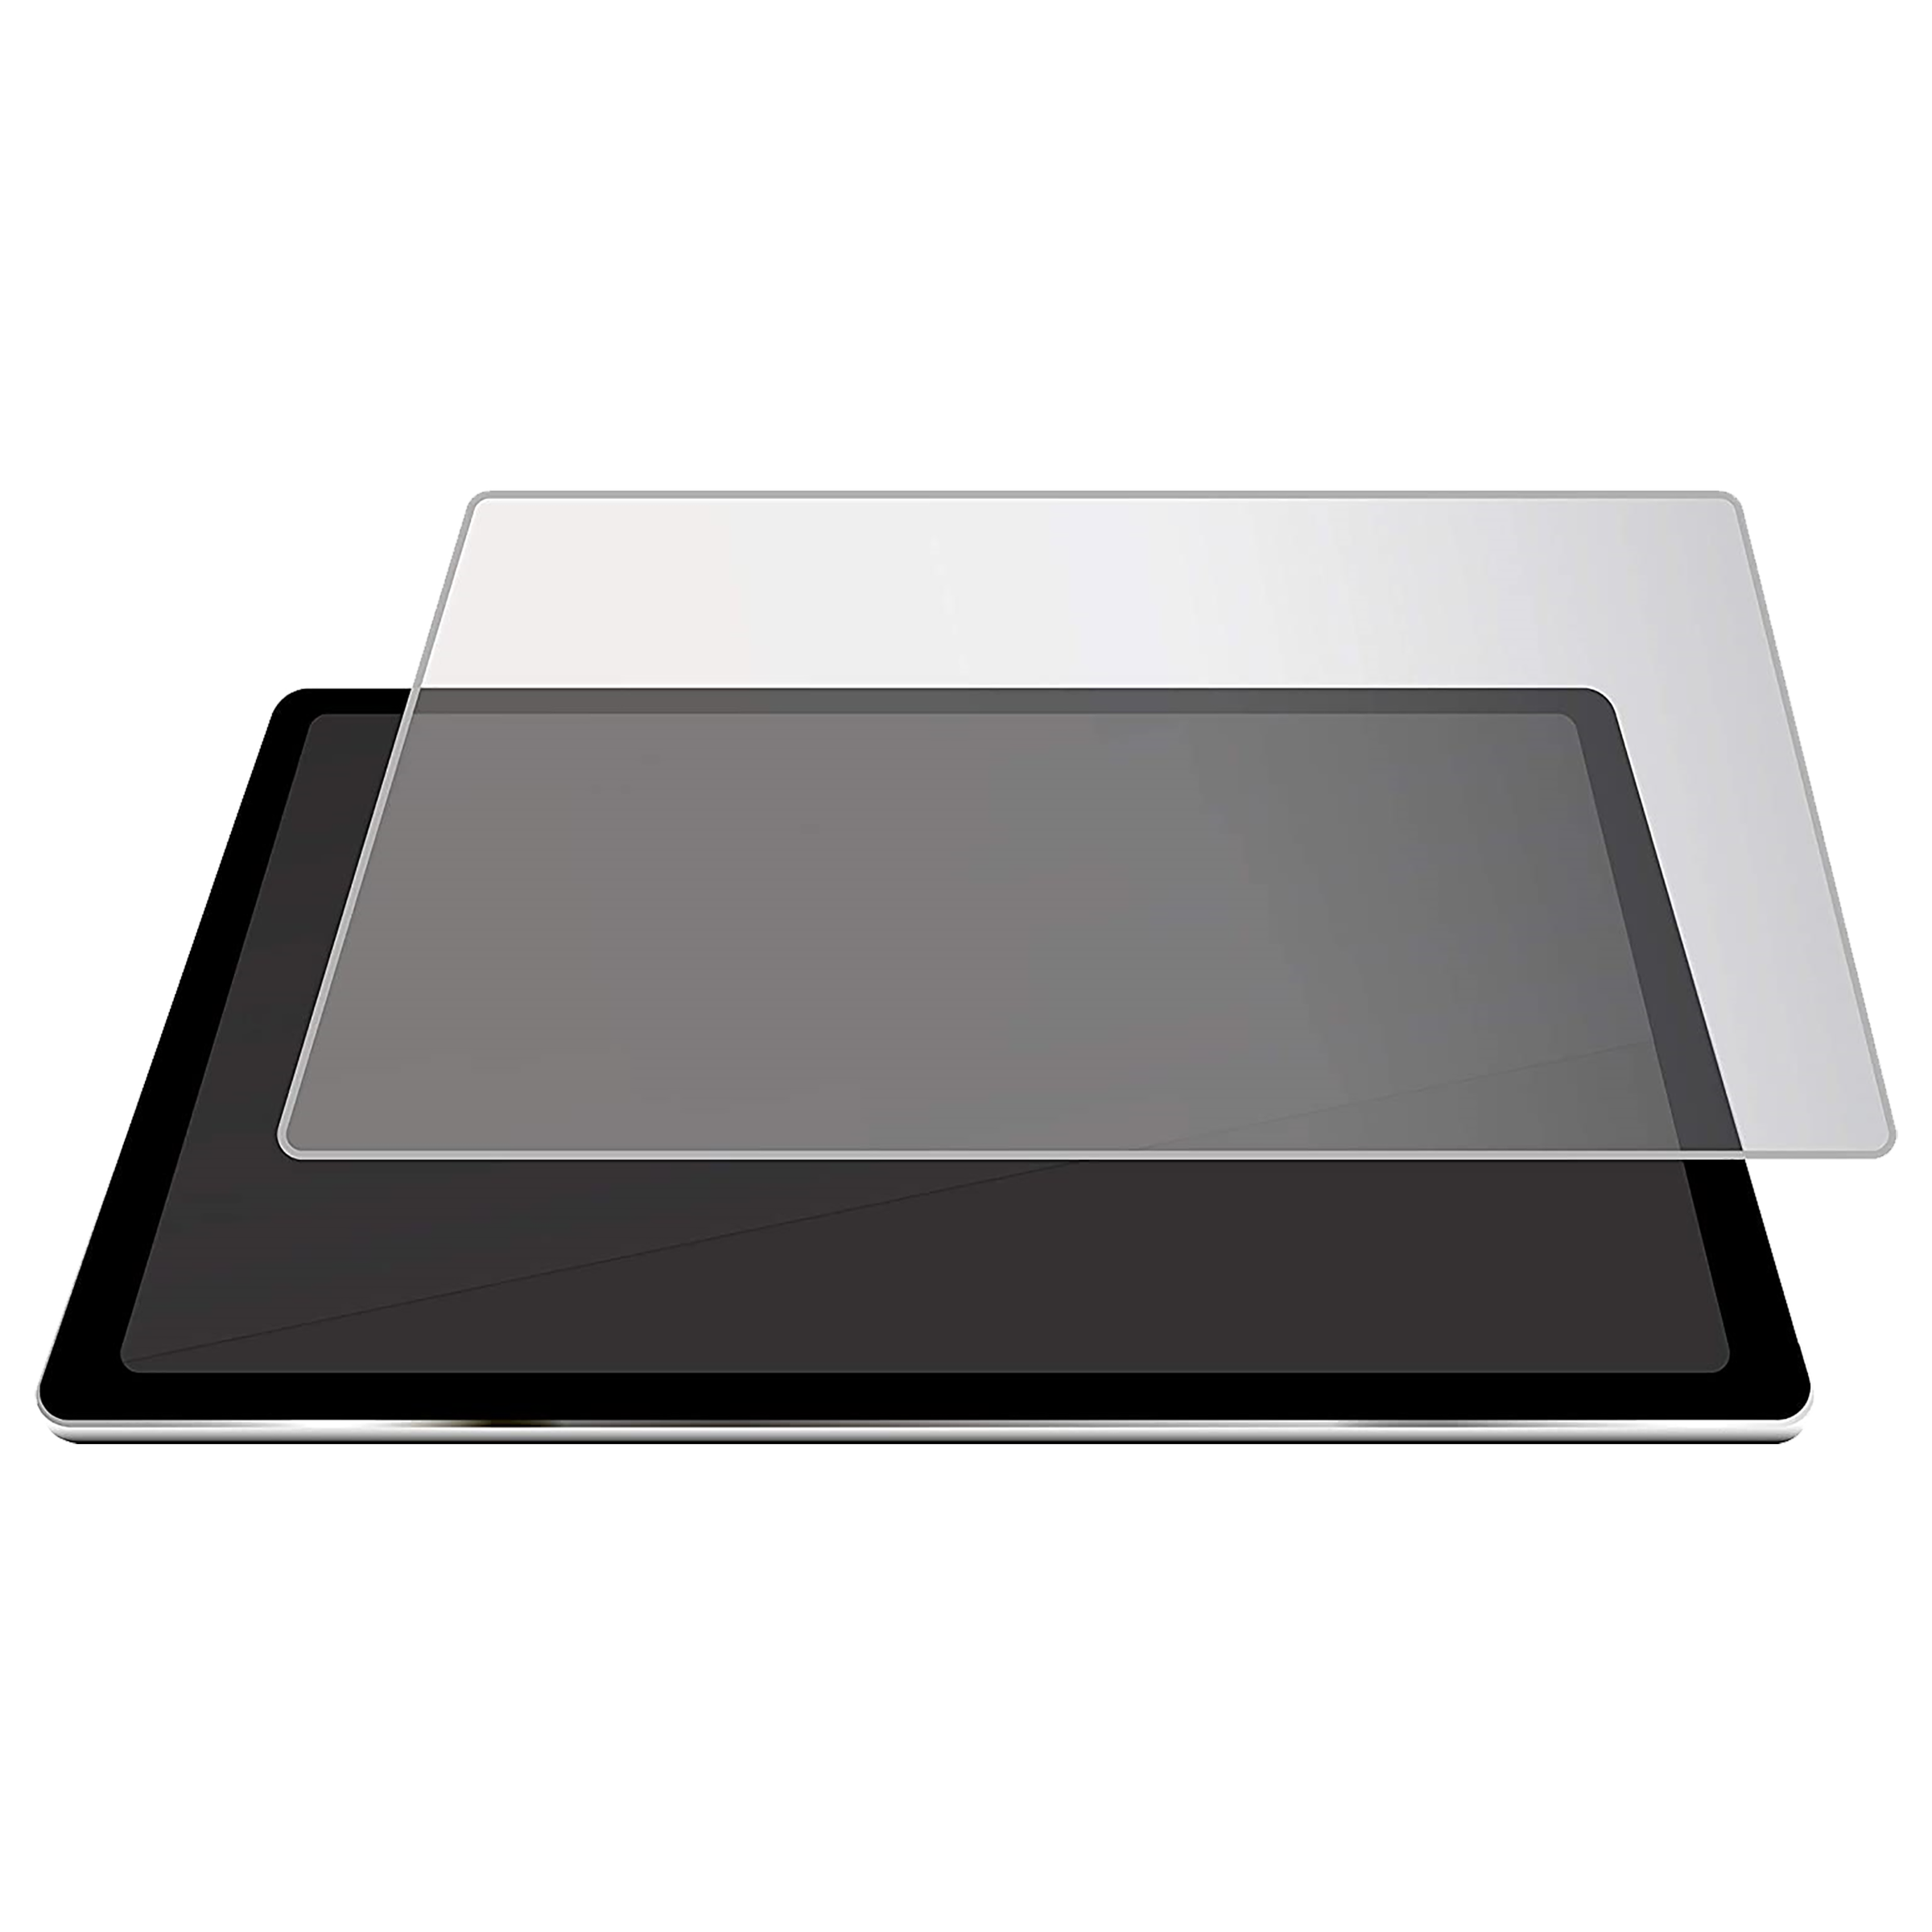 STM Screen Protector For iPad 7th gen (Ultimate Protection, STM-233-241JU-01, Transparent)_1